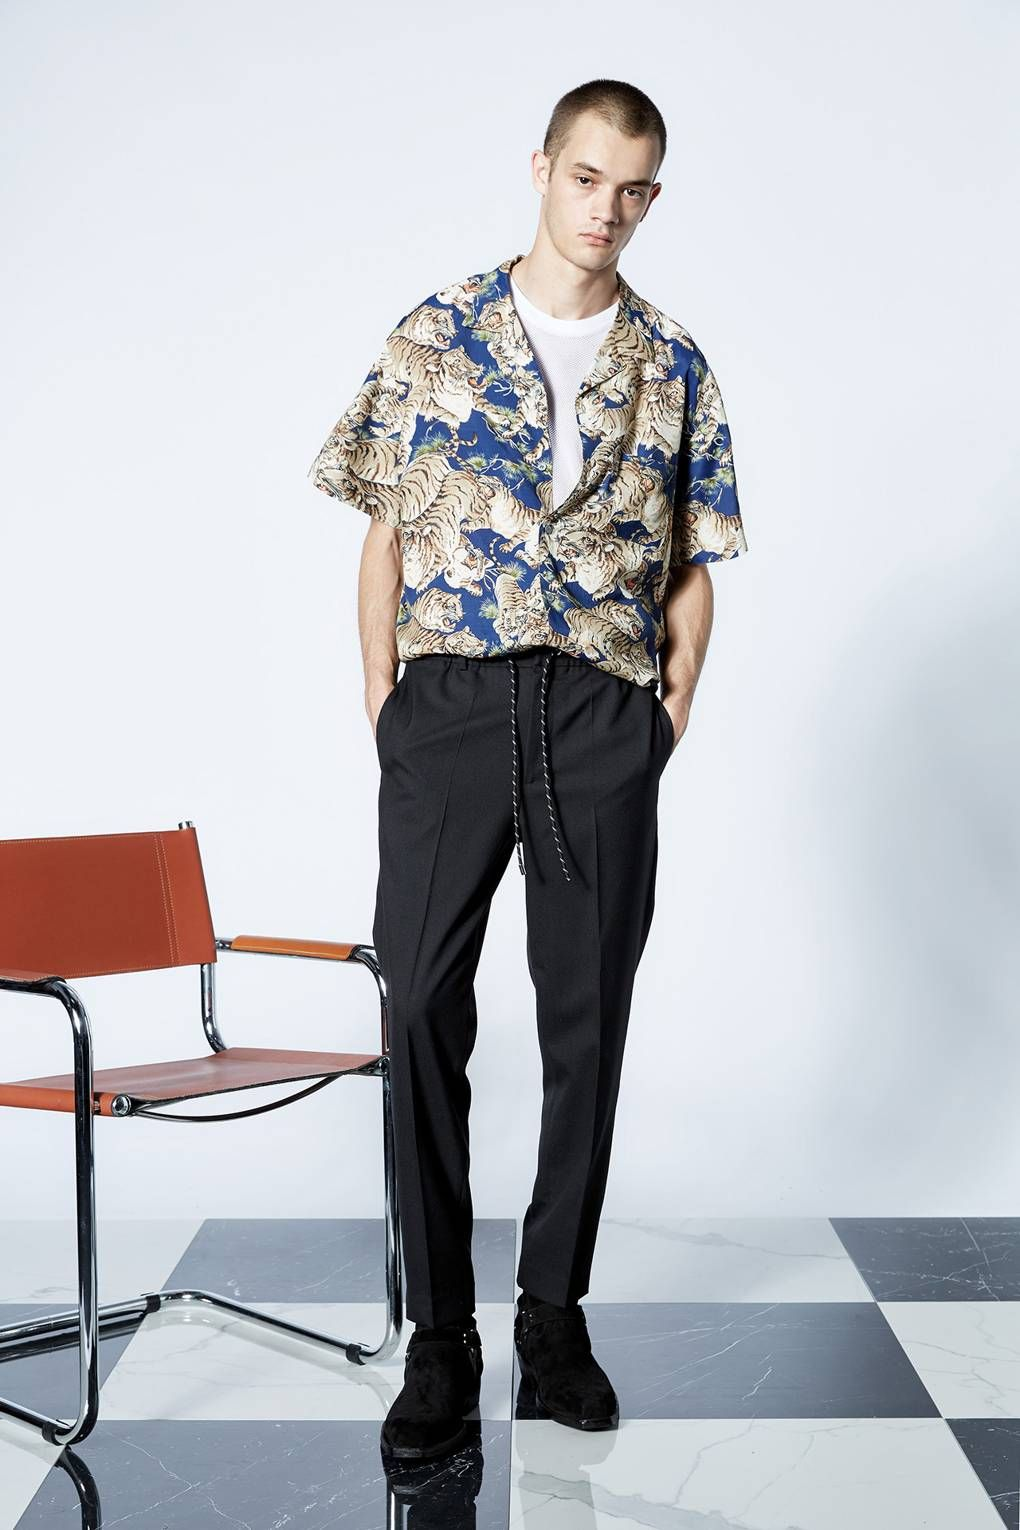 The Kooples Spring/Summer 2019 Menswear (With images